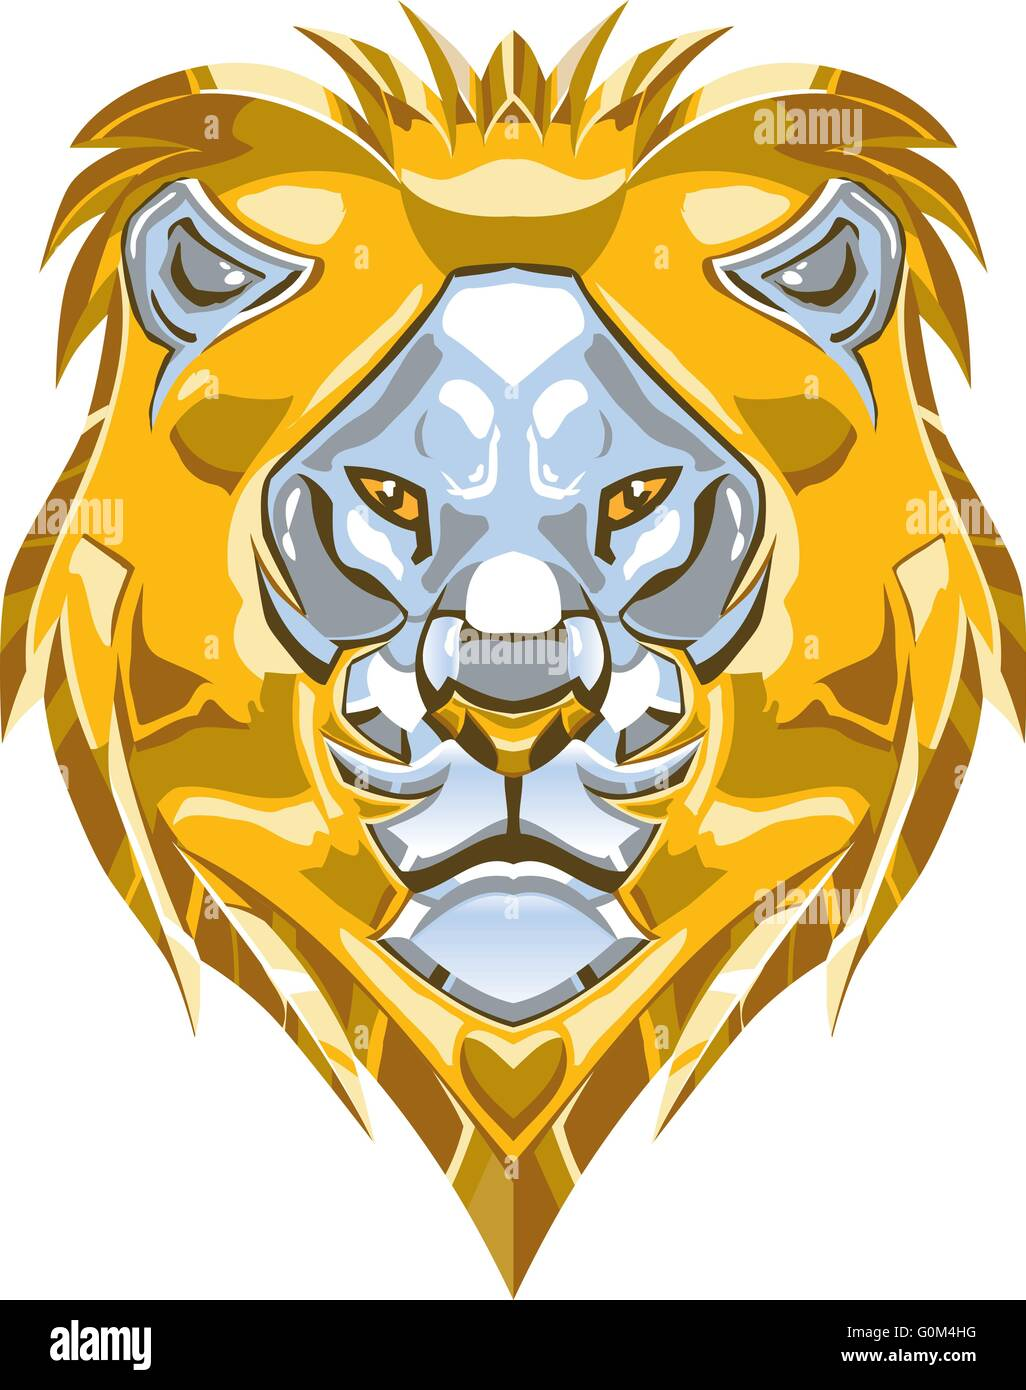 Vector cartoon clip art illustration of a polished shiny metallic gold and silver or chrome lion head ornament. - Stock Vector